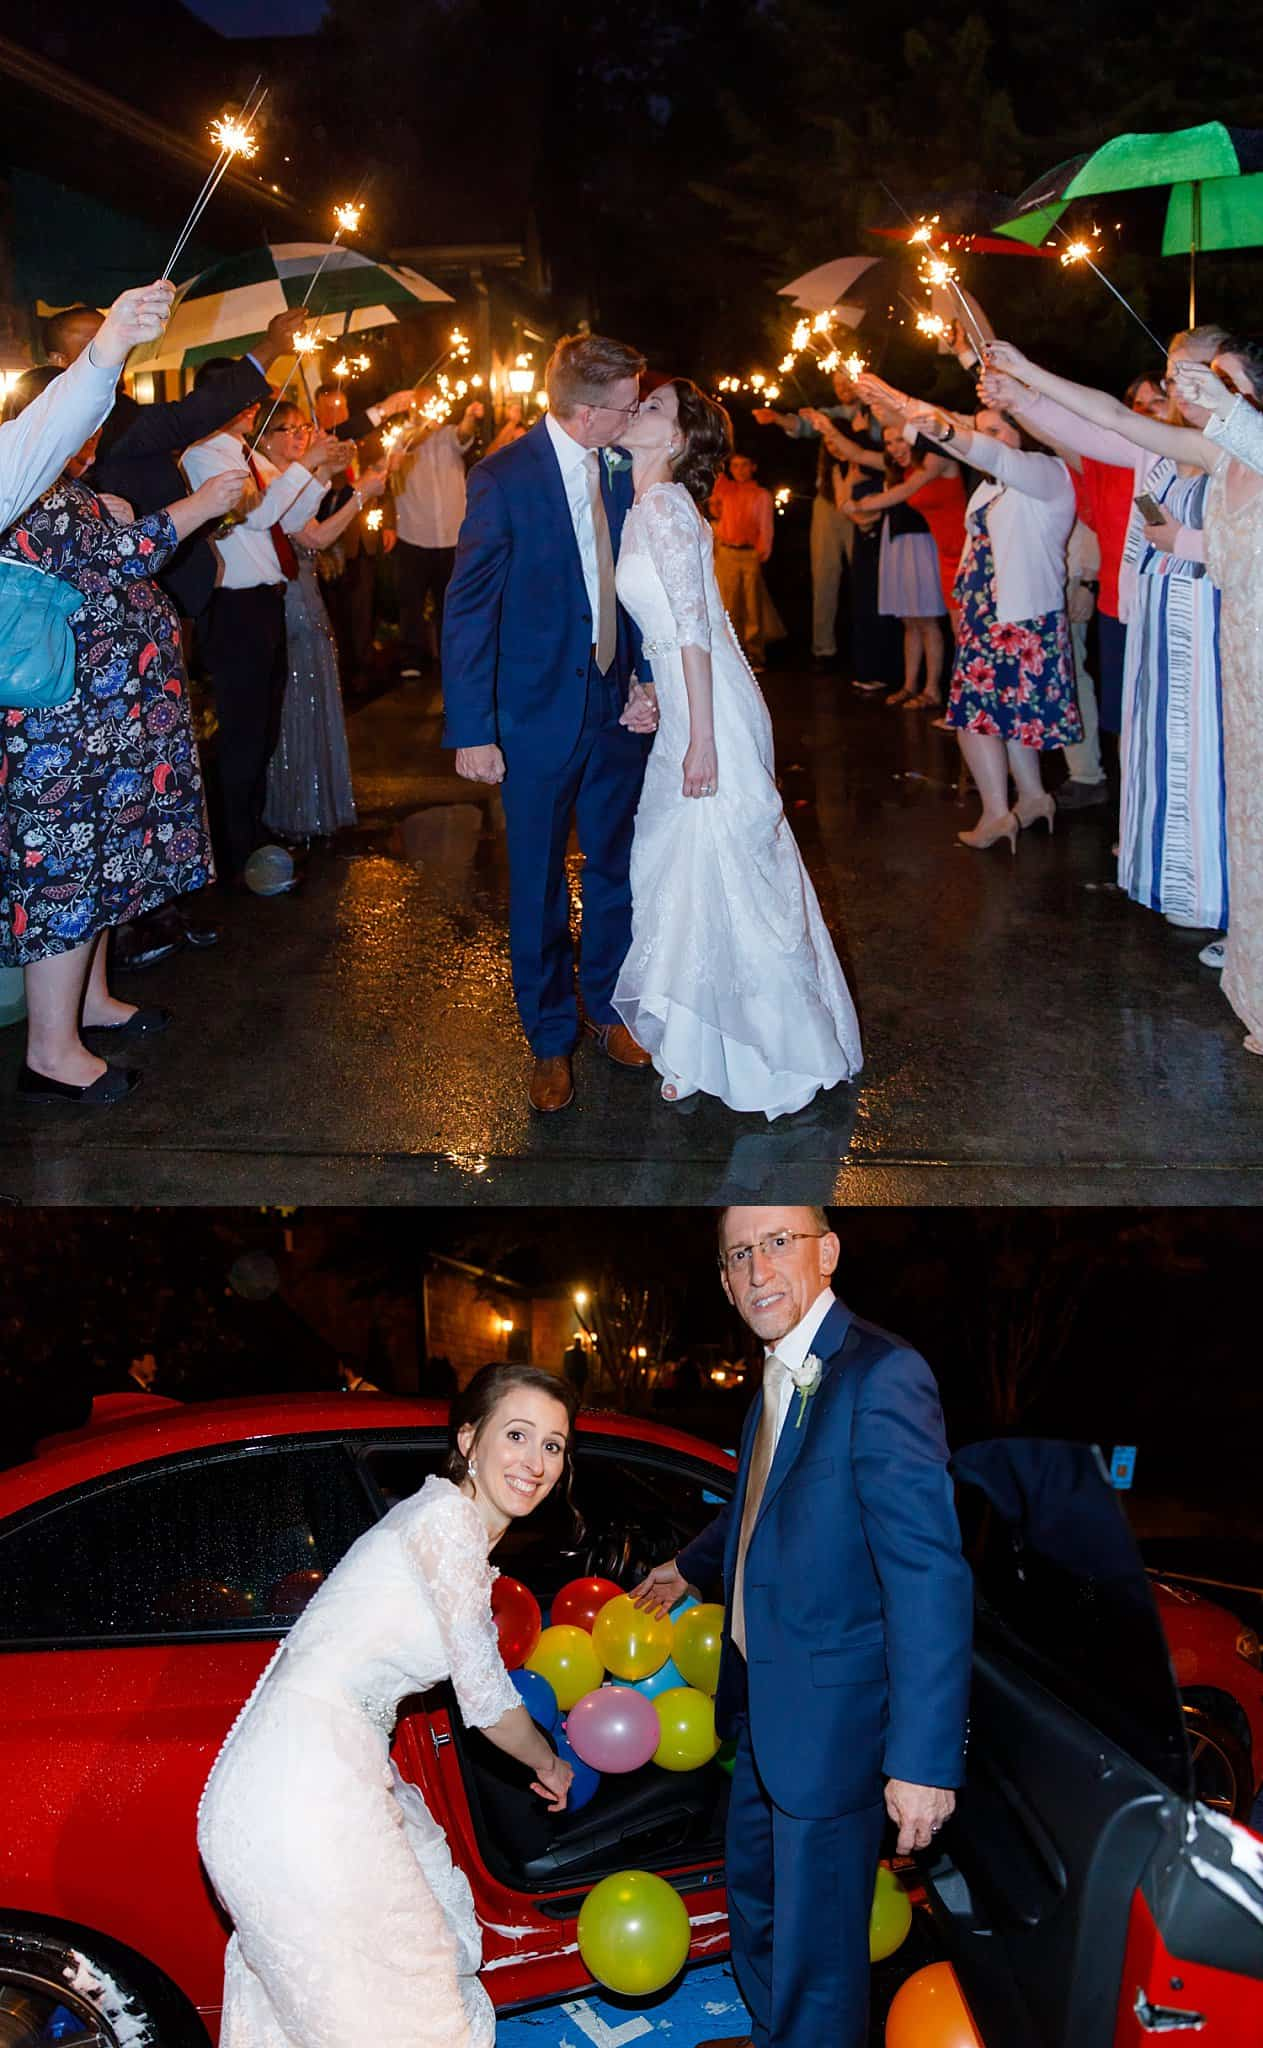 Bride and groom sparkler exit with balloons in car